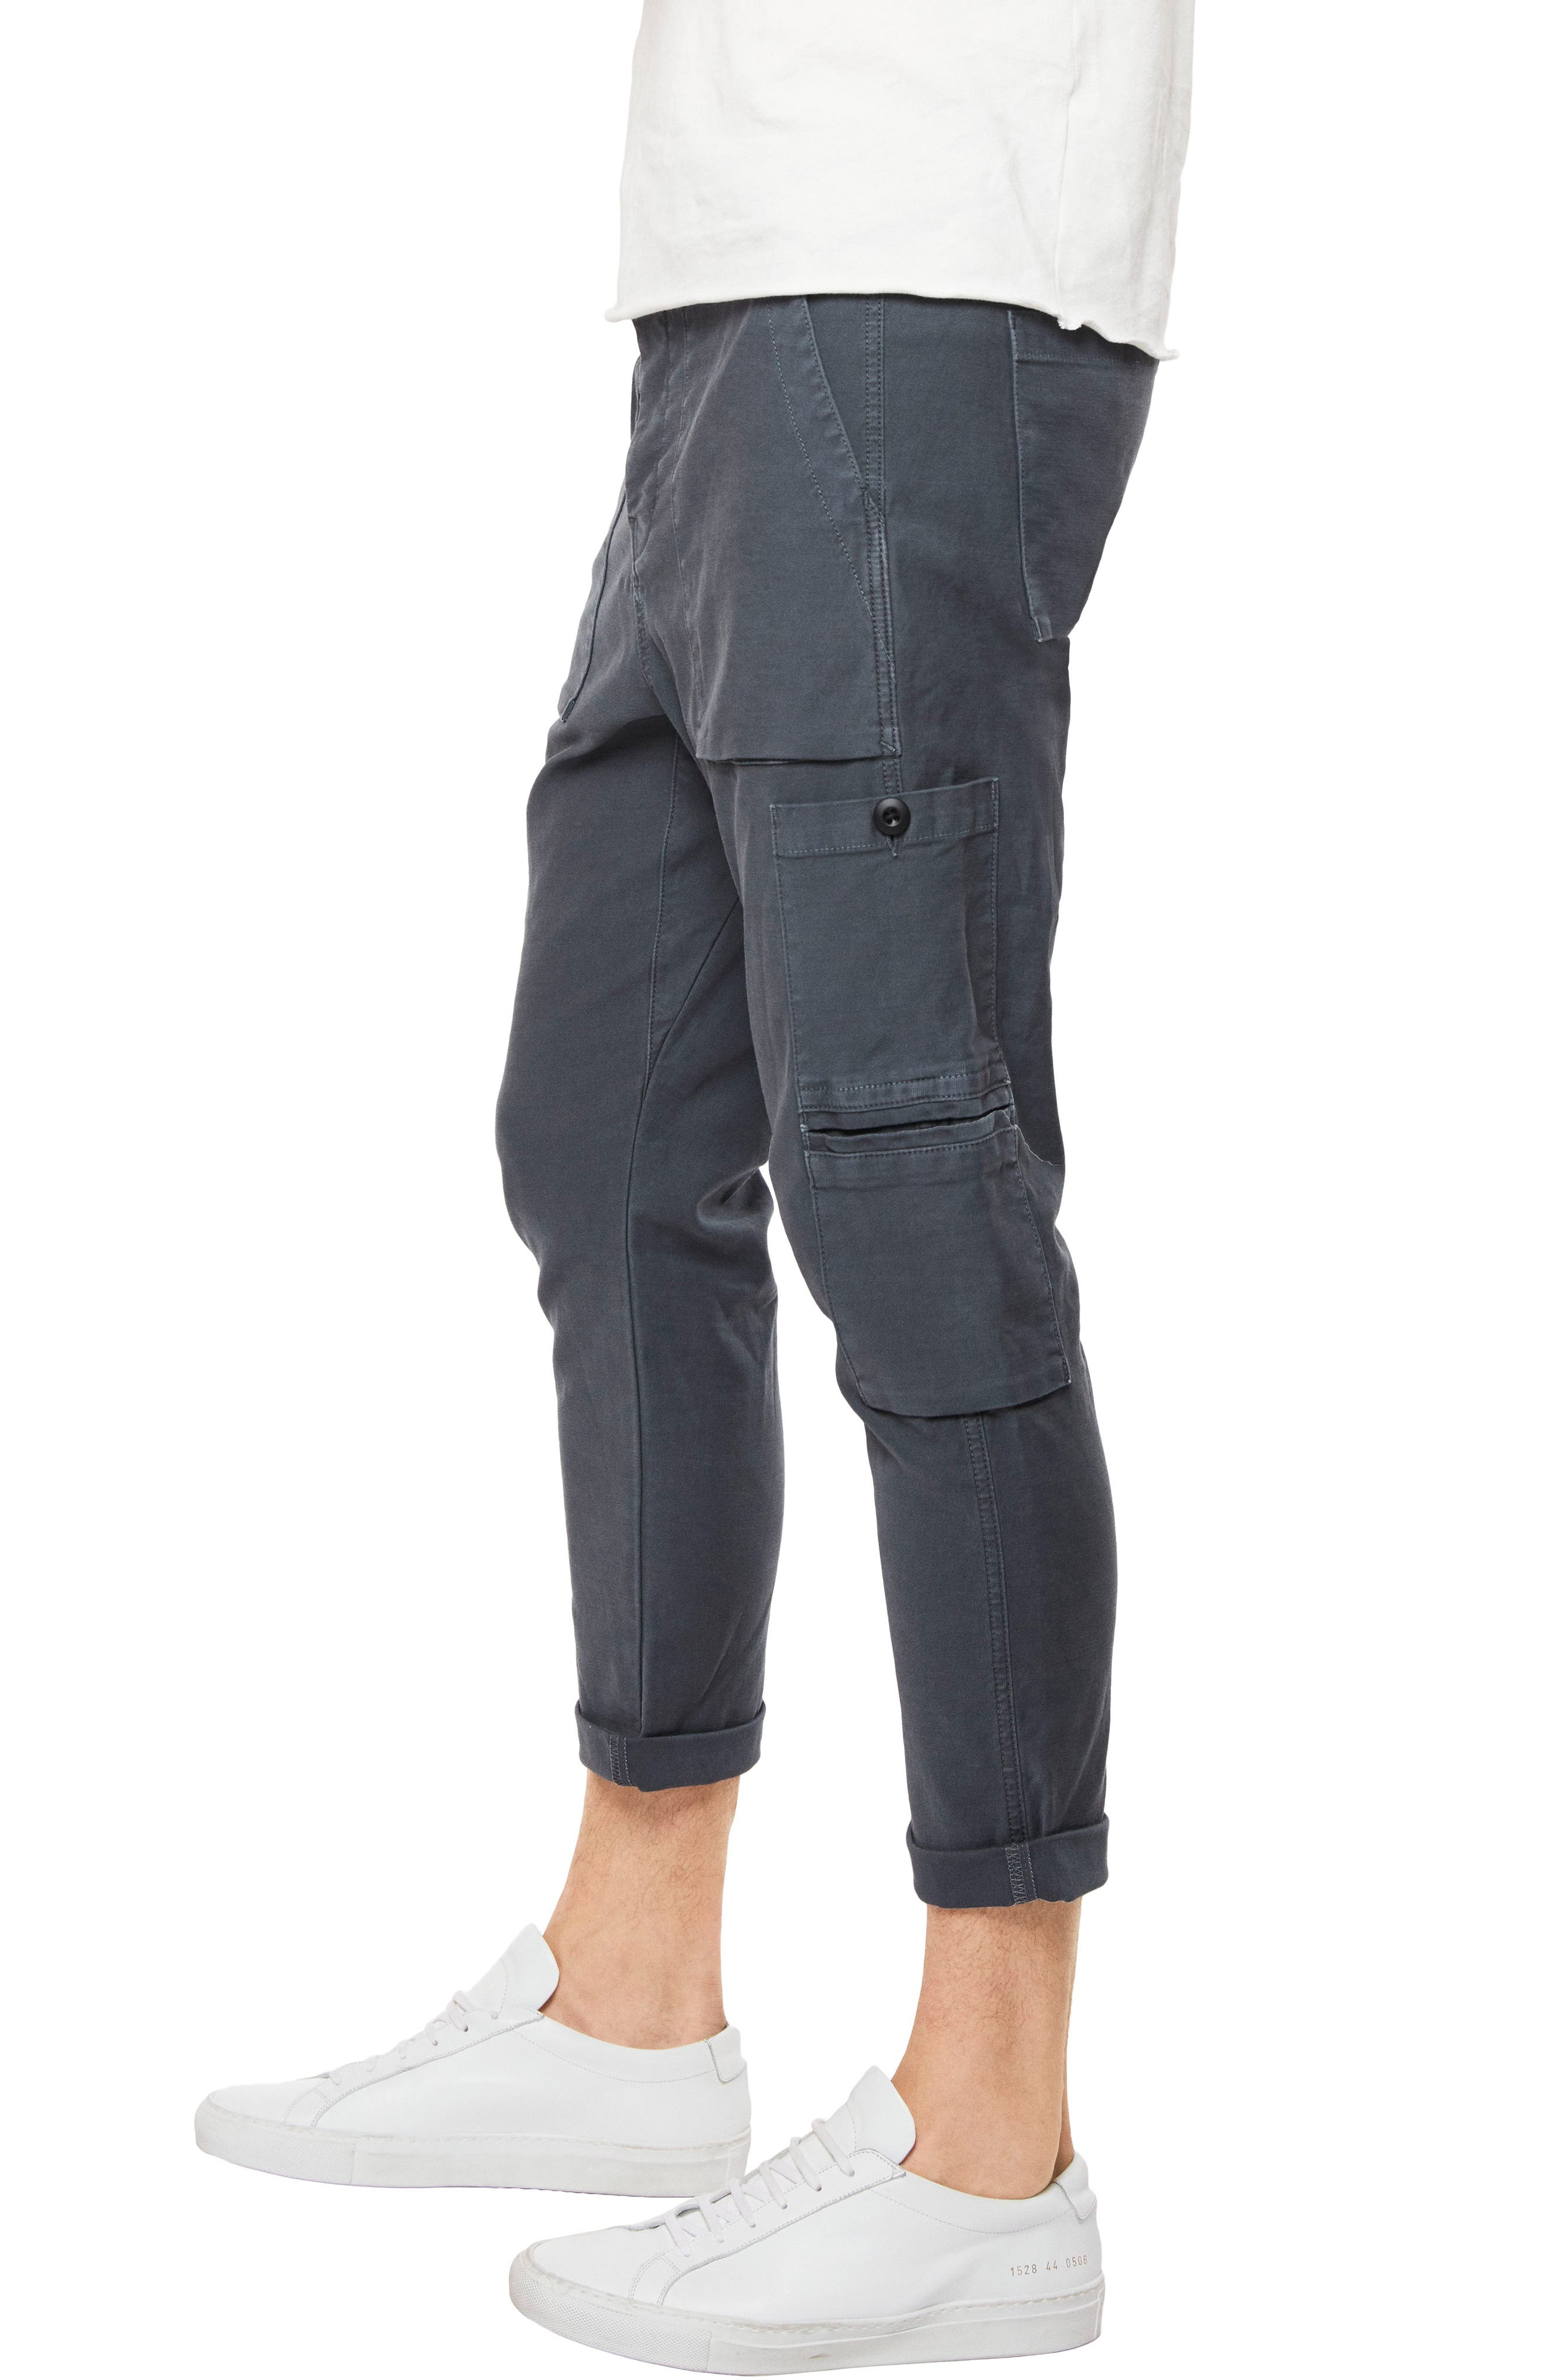 Koeficient Relaxed Fit Cargo Crop Pants,                             Alternate thumbnail 3, color,                             400